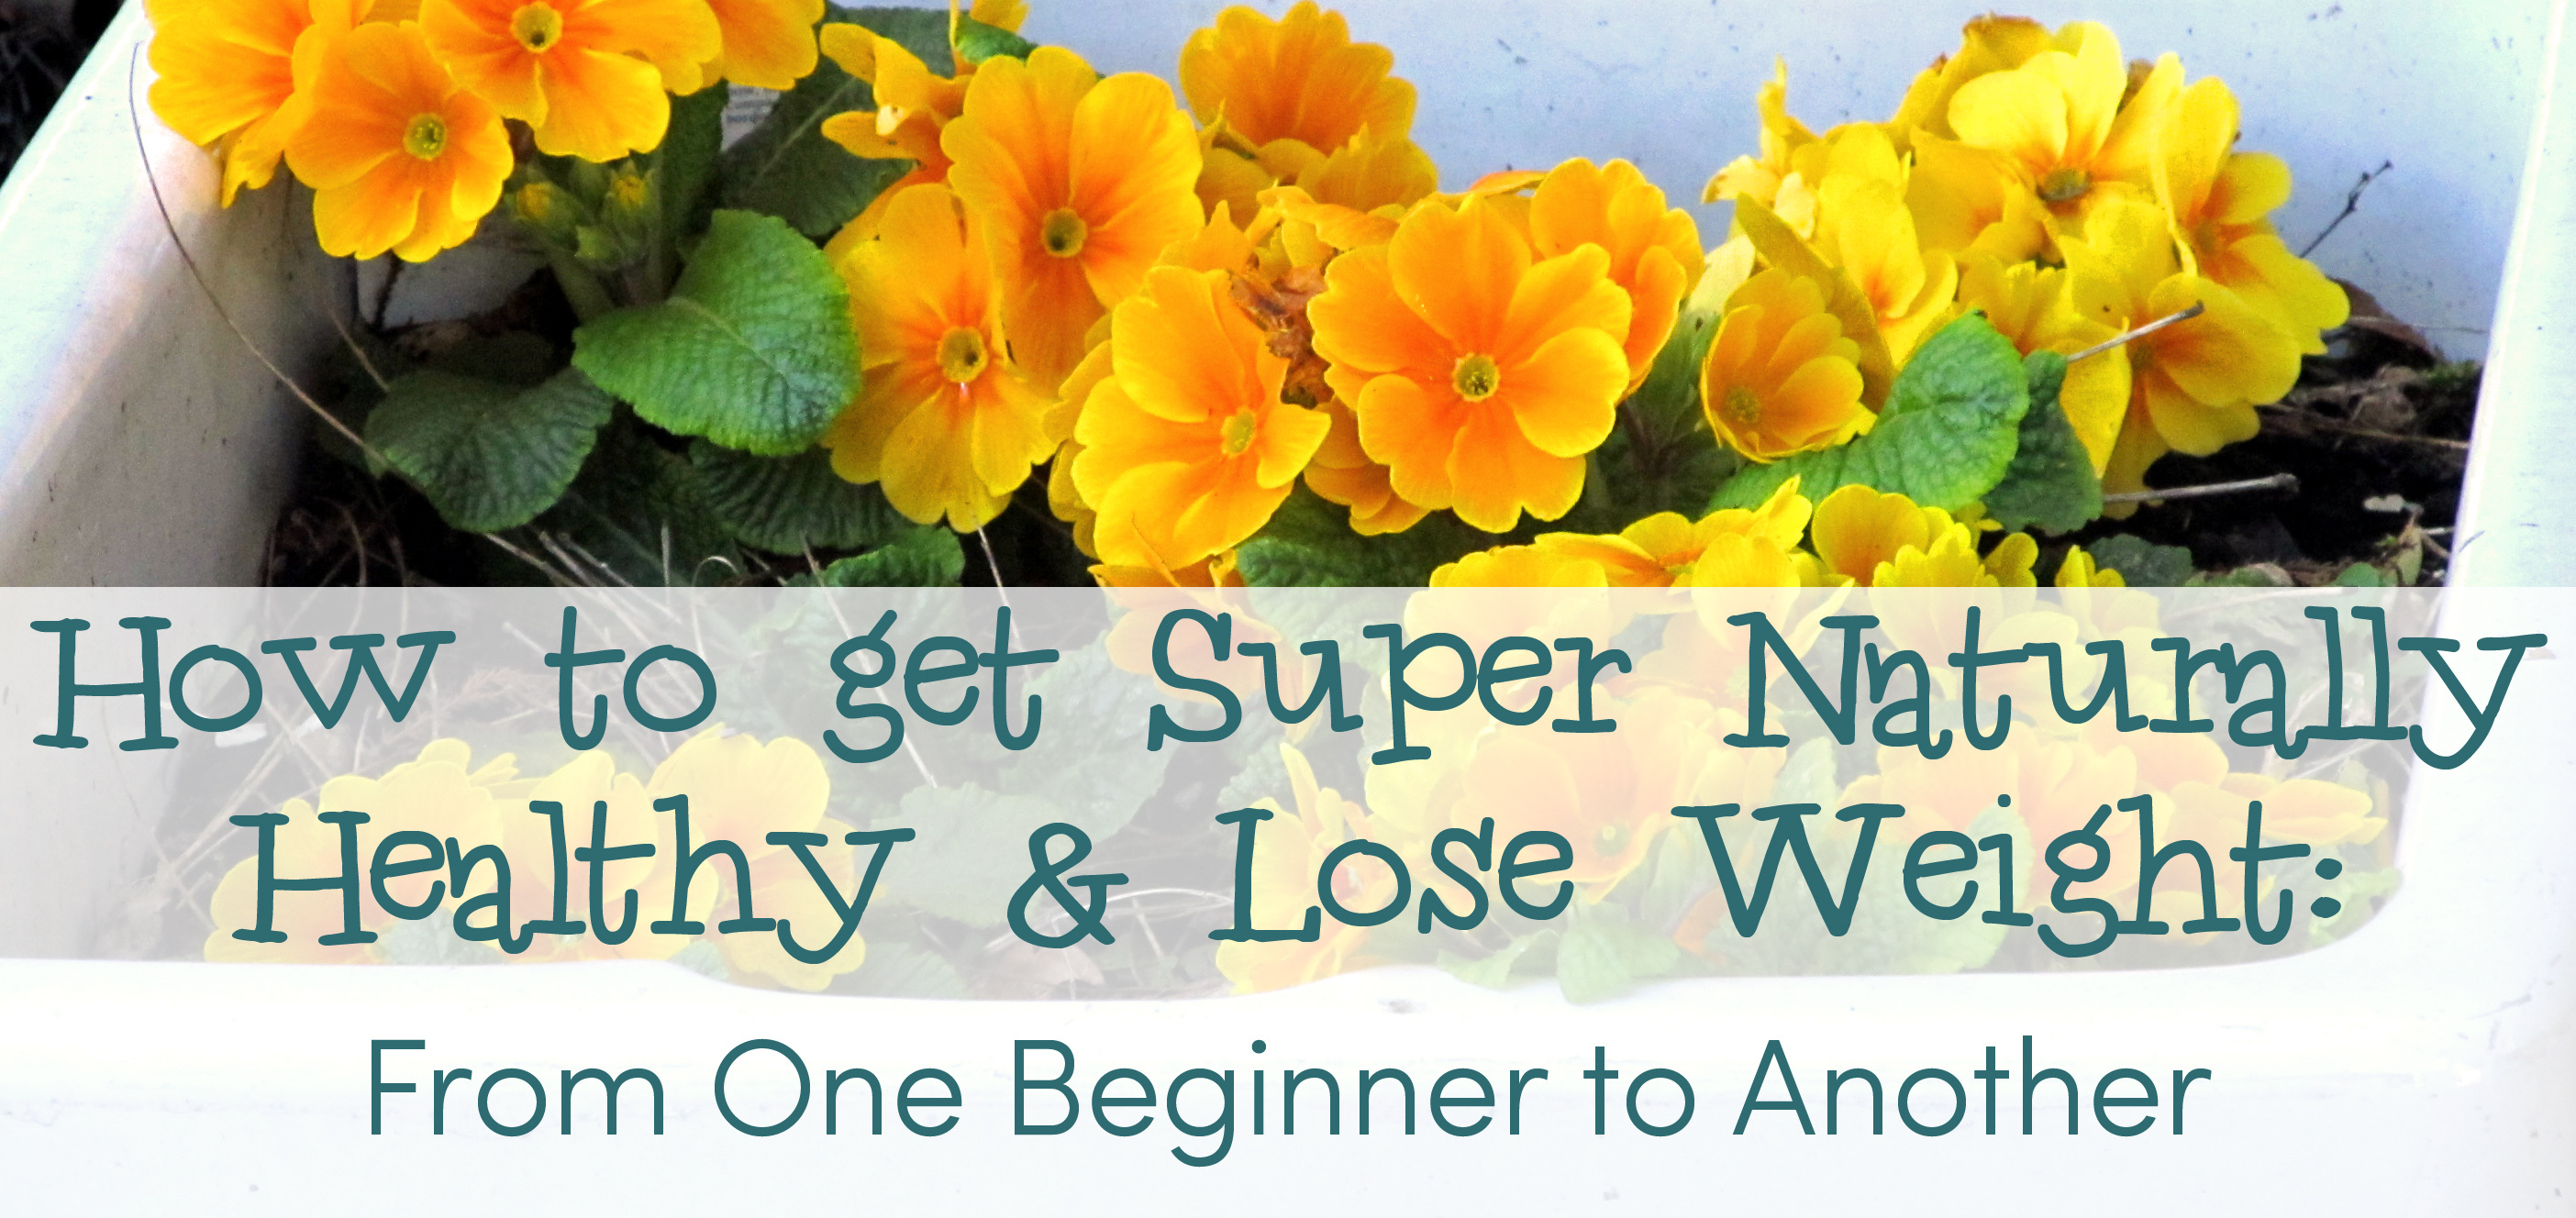 How to get Super Naturally Healthy & Lose Weight: From One Beginner to Another